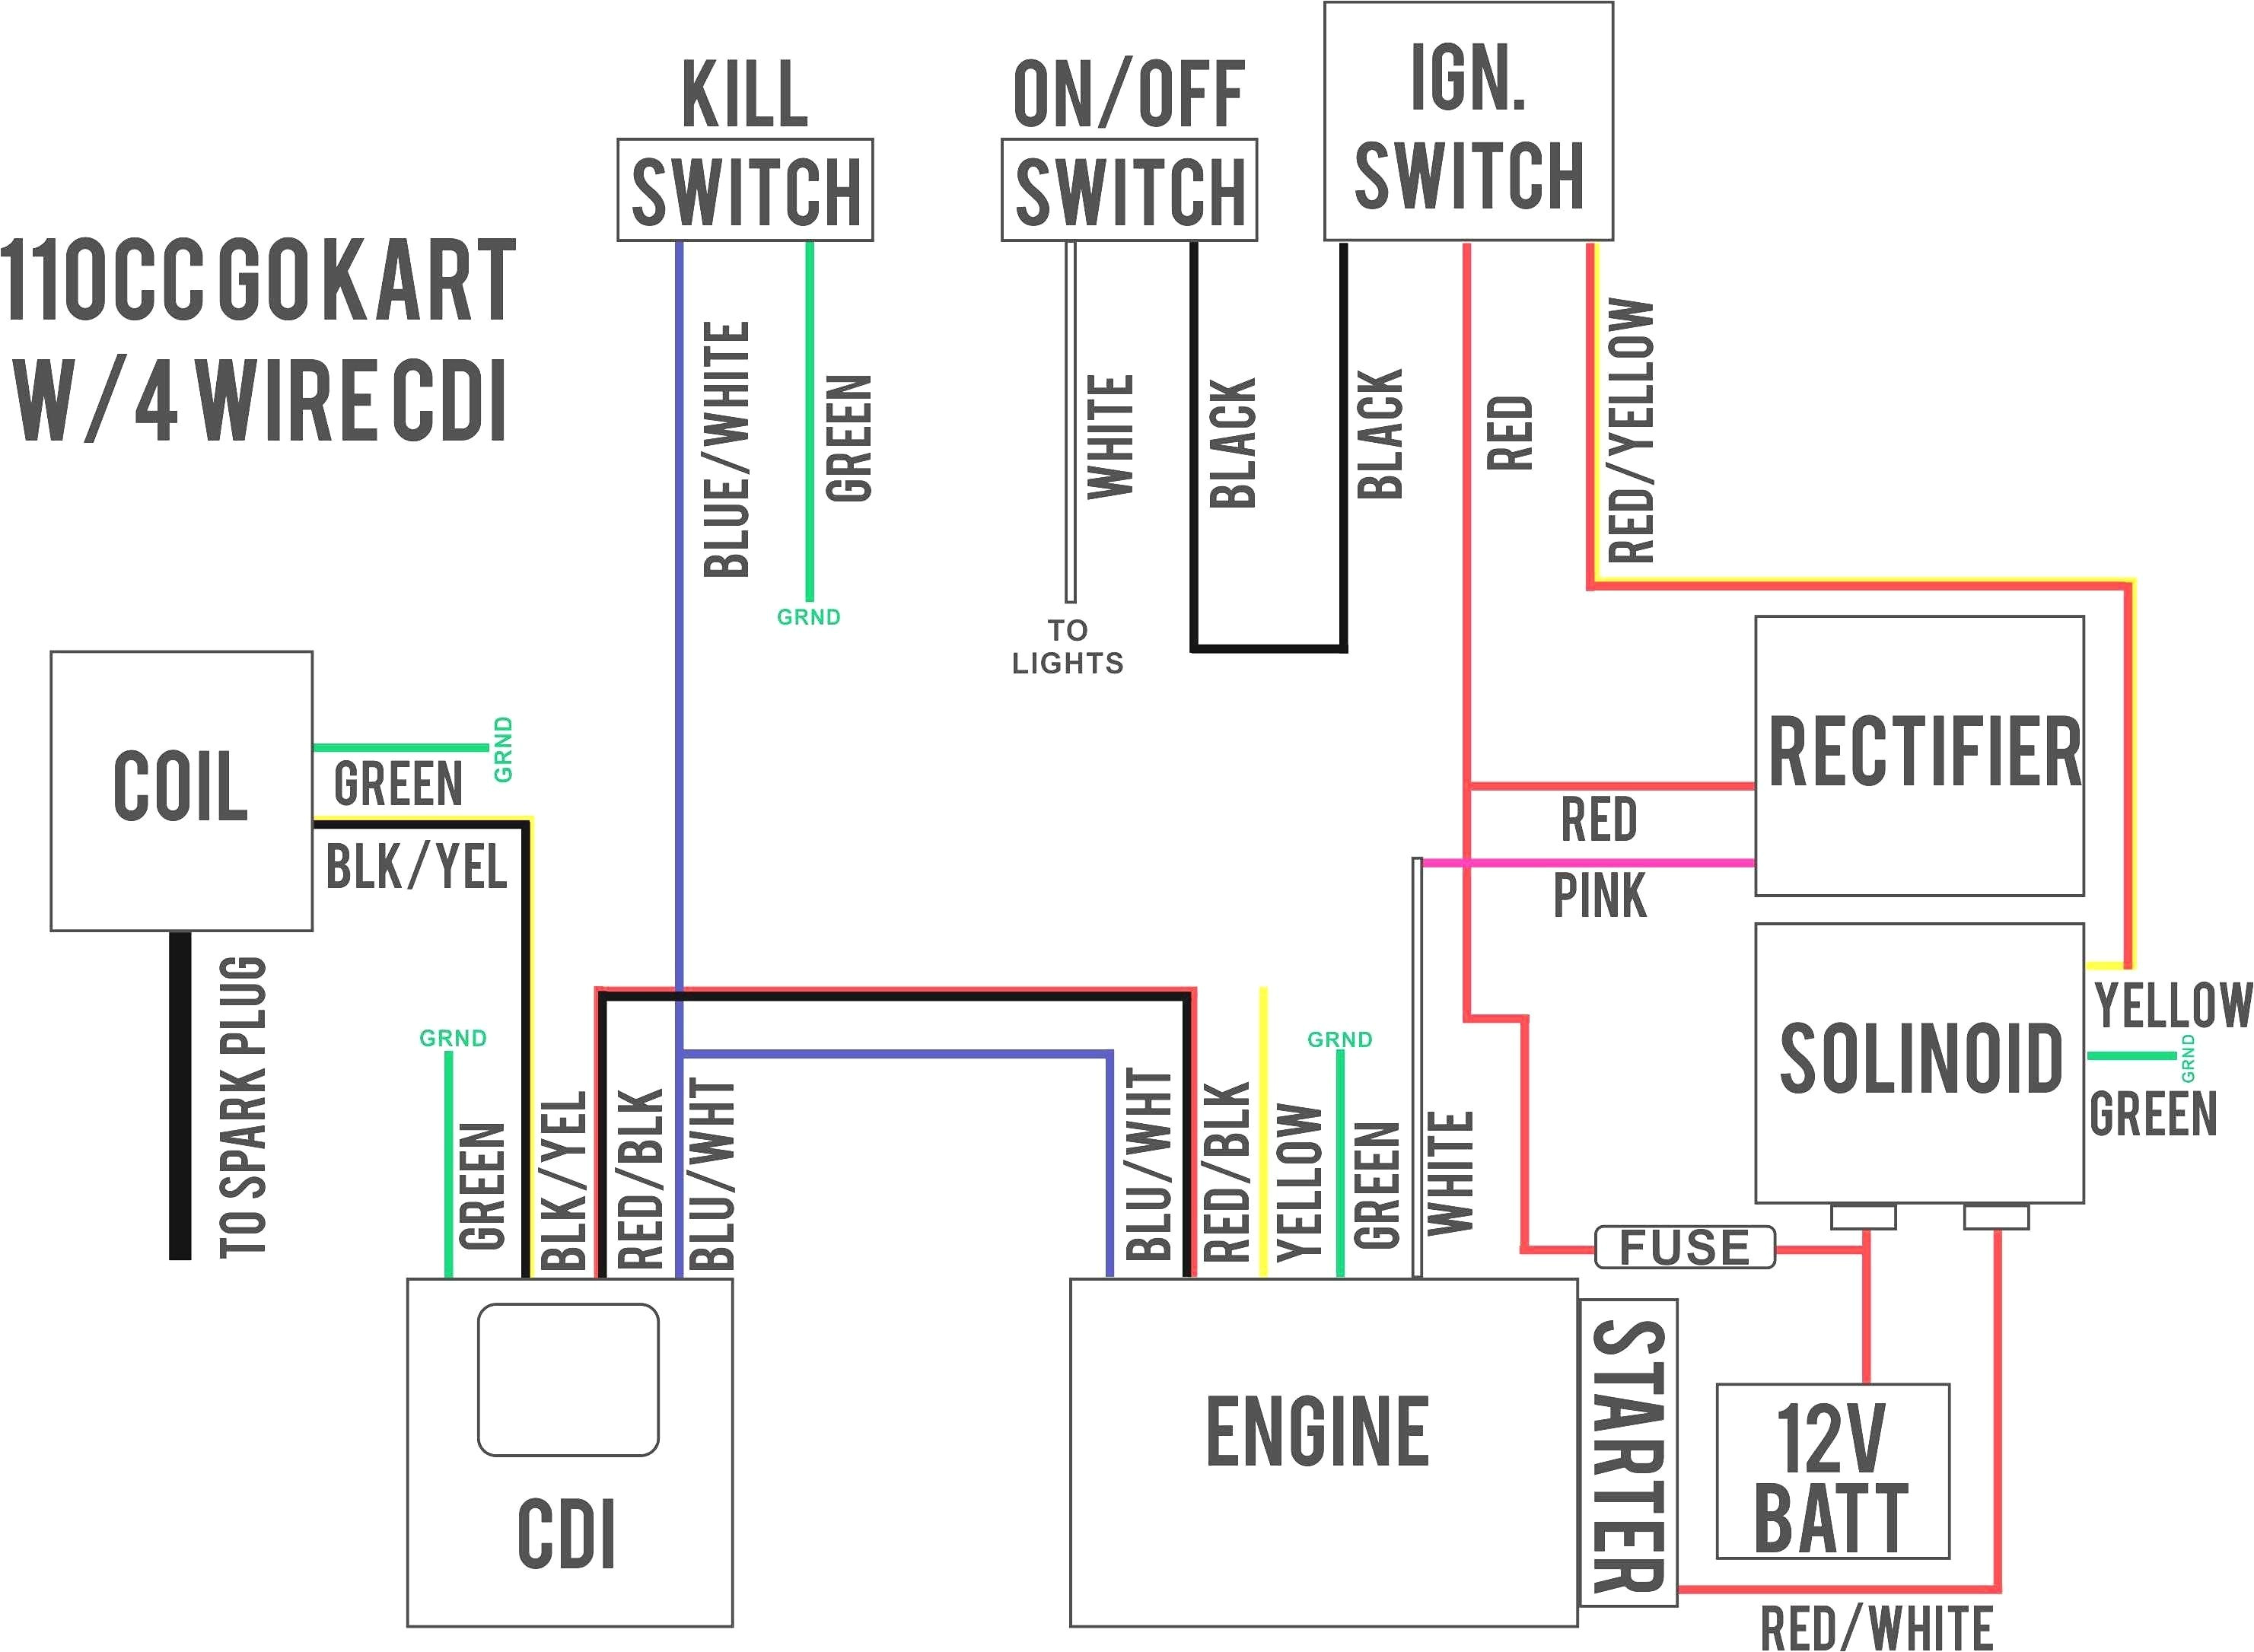 alarm wiring guide my wiring diagram fire alarm wiring guide alarm wiring guide